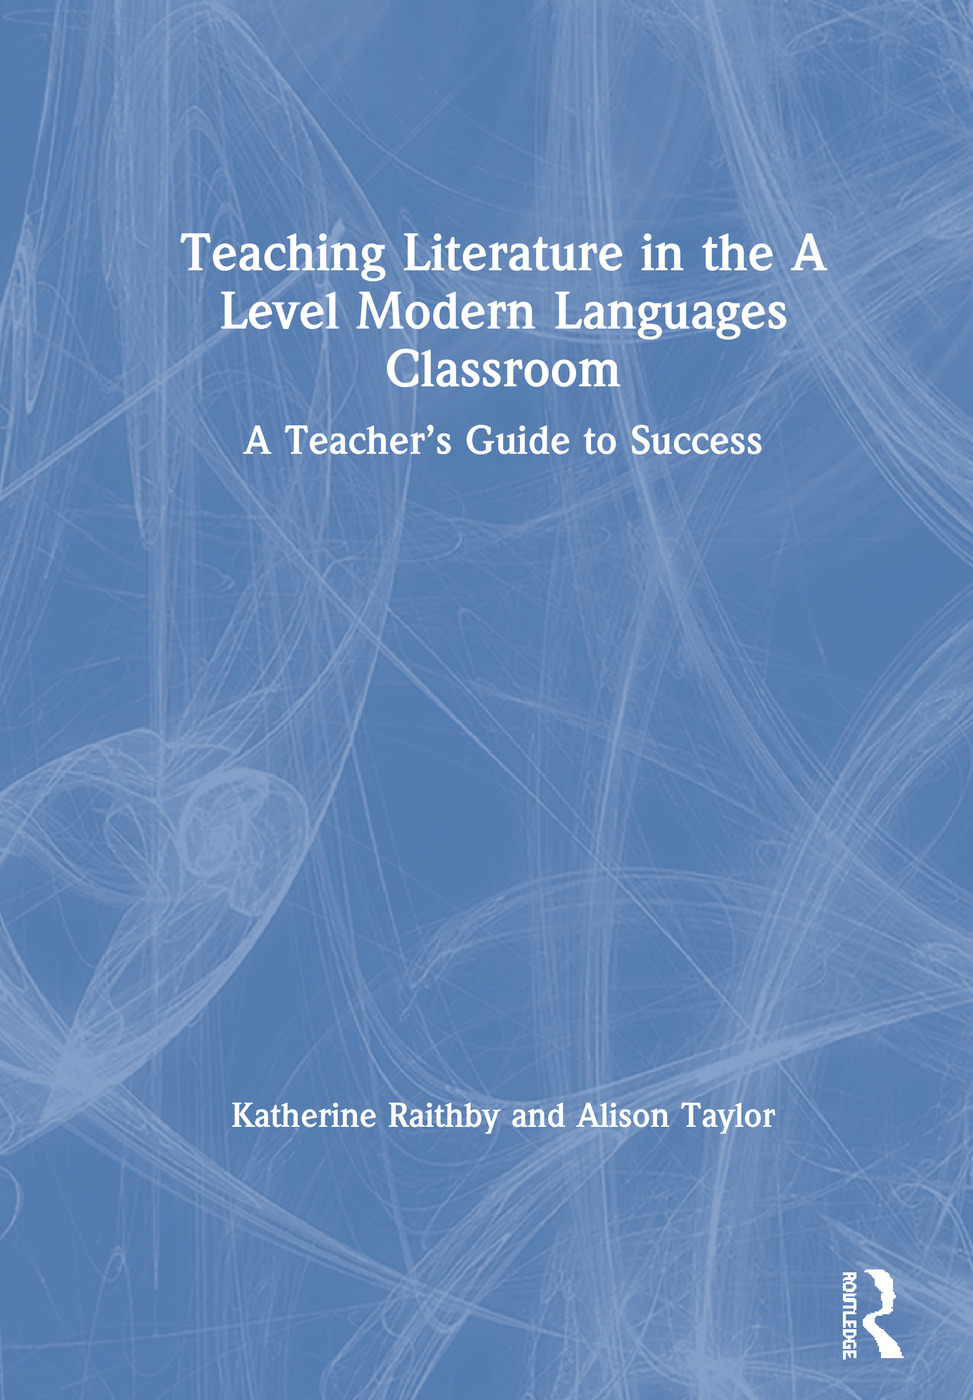 Teaching Literature in the A Level Modern Languages Classroom: A Teacher's Guide to Success book cover